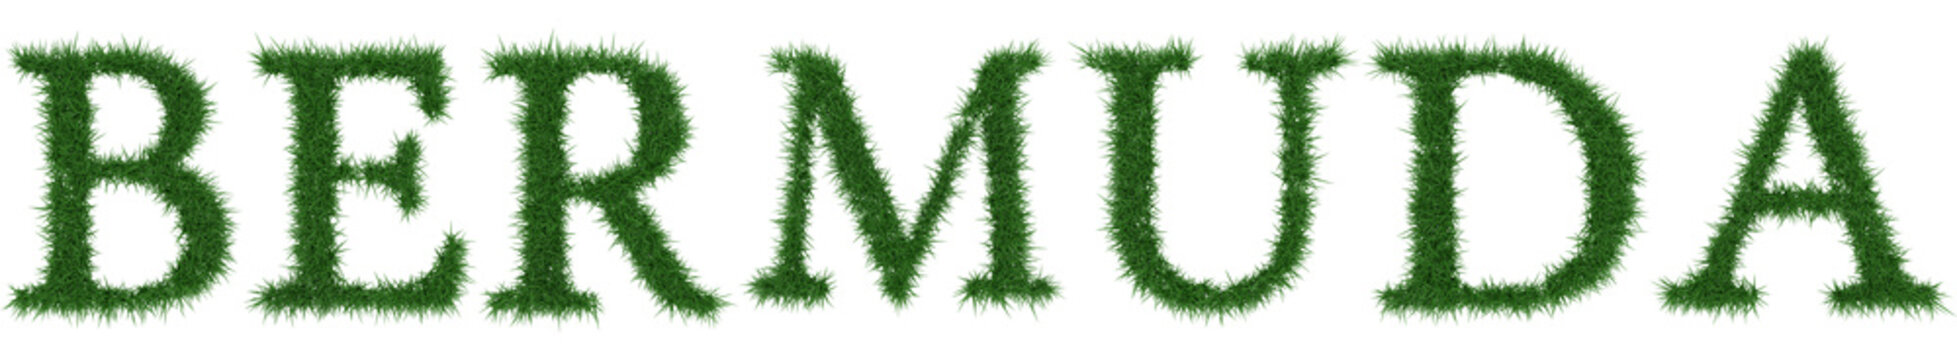 Bermuda - 3D rendering fresh Grass letters isolated on whhite background.